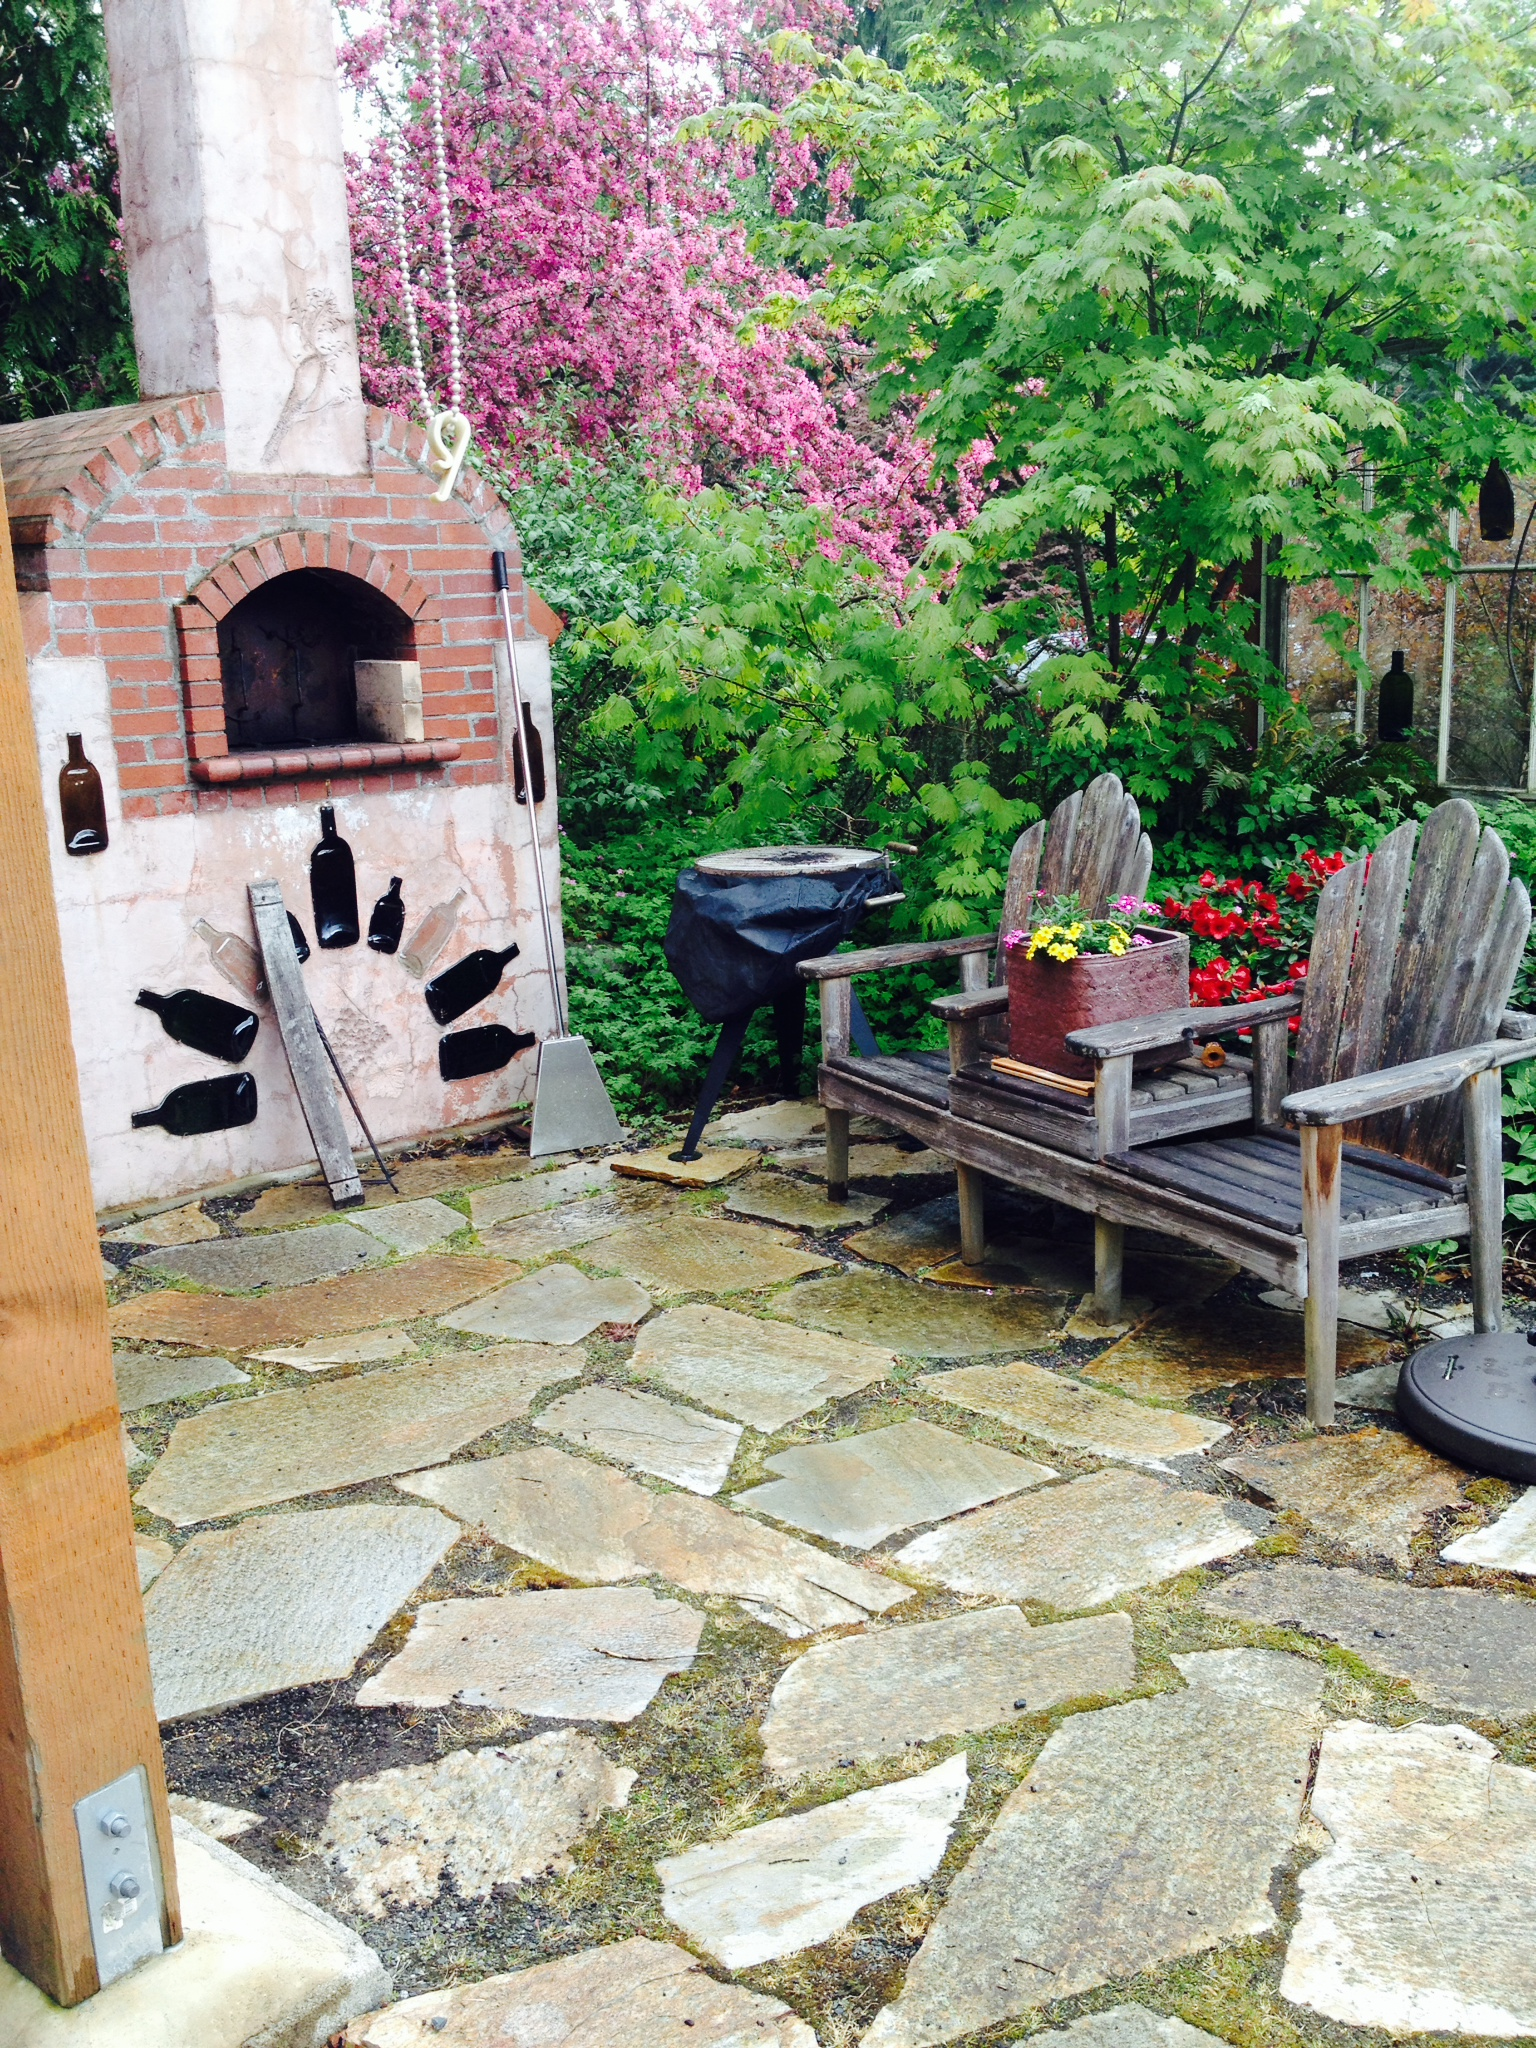 Backyard Vineyard Ideas : camaraderie wine cellars yard backyard diy ideas for garden stones